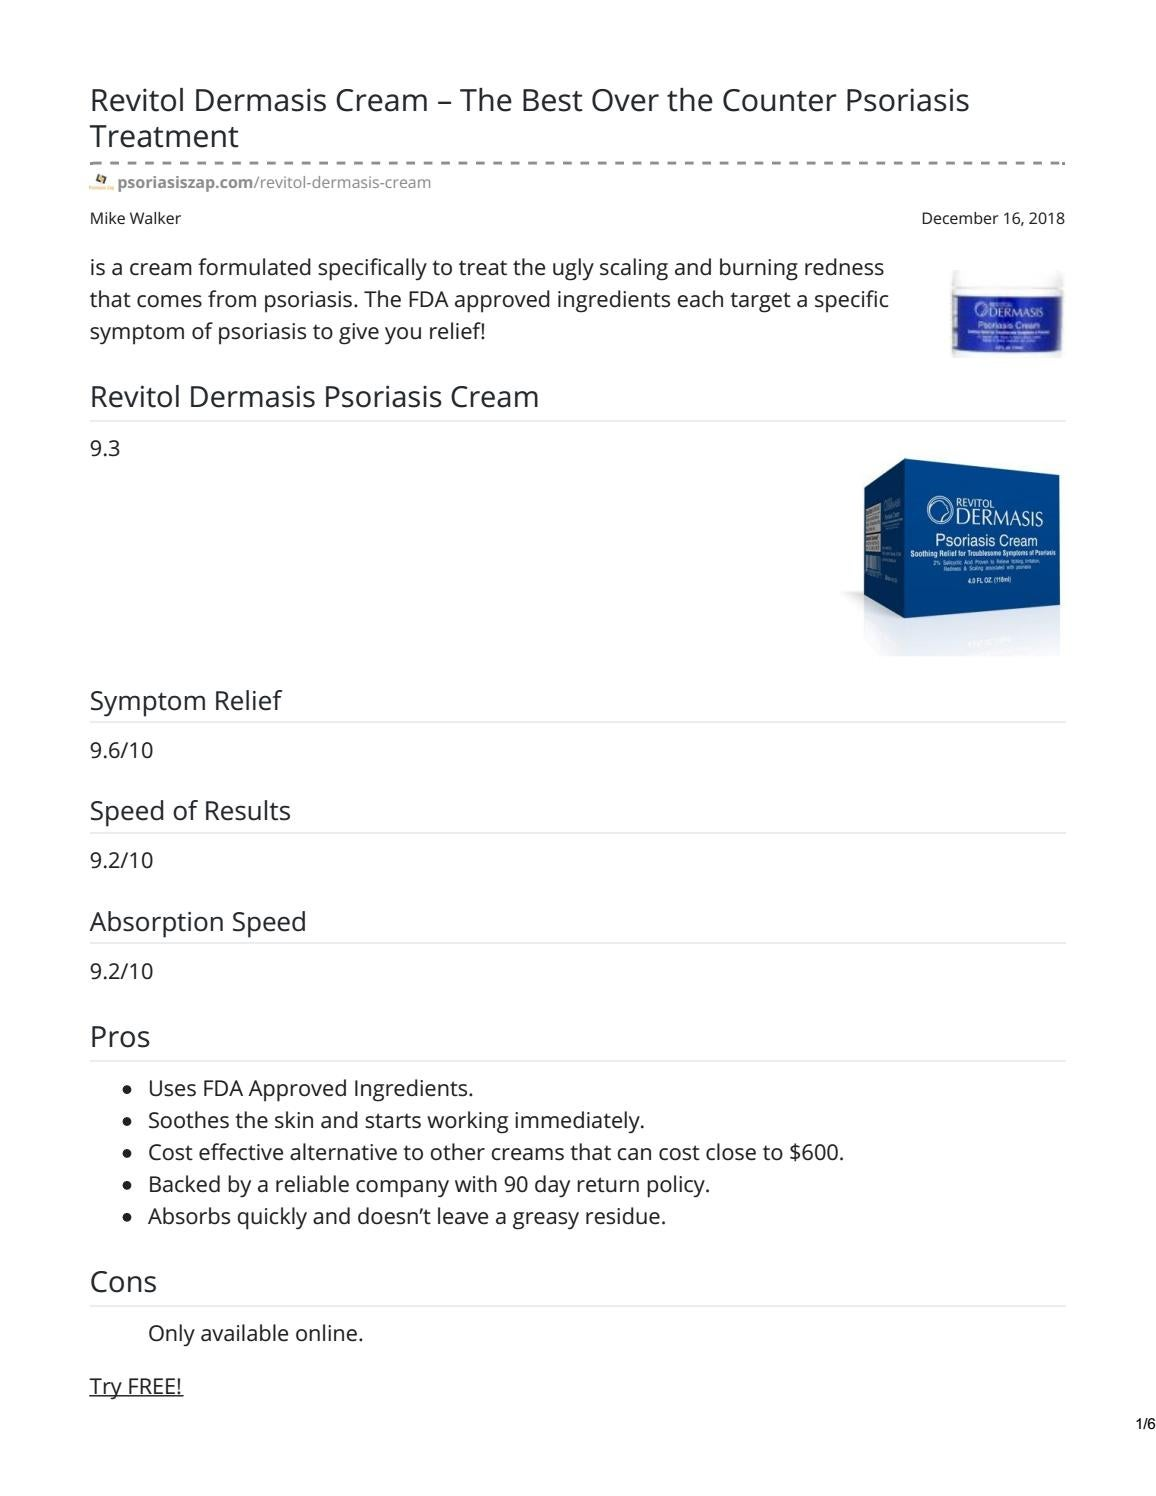 Revitol Dermasis Cream The Best Over The Counter Psoriasis